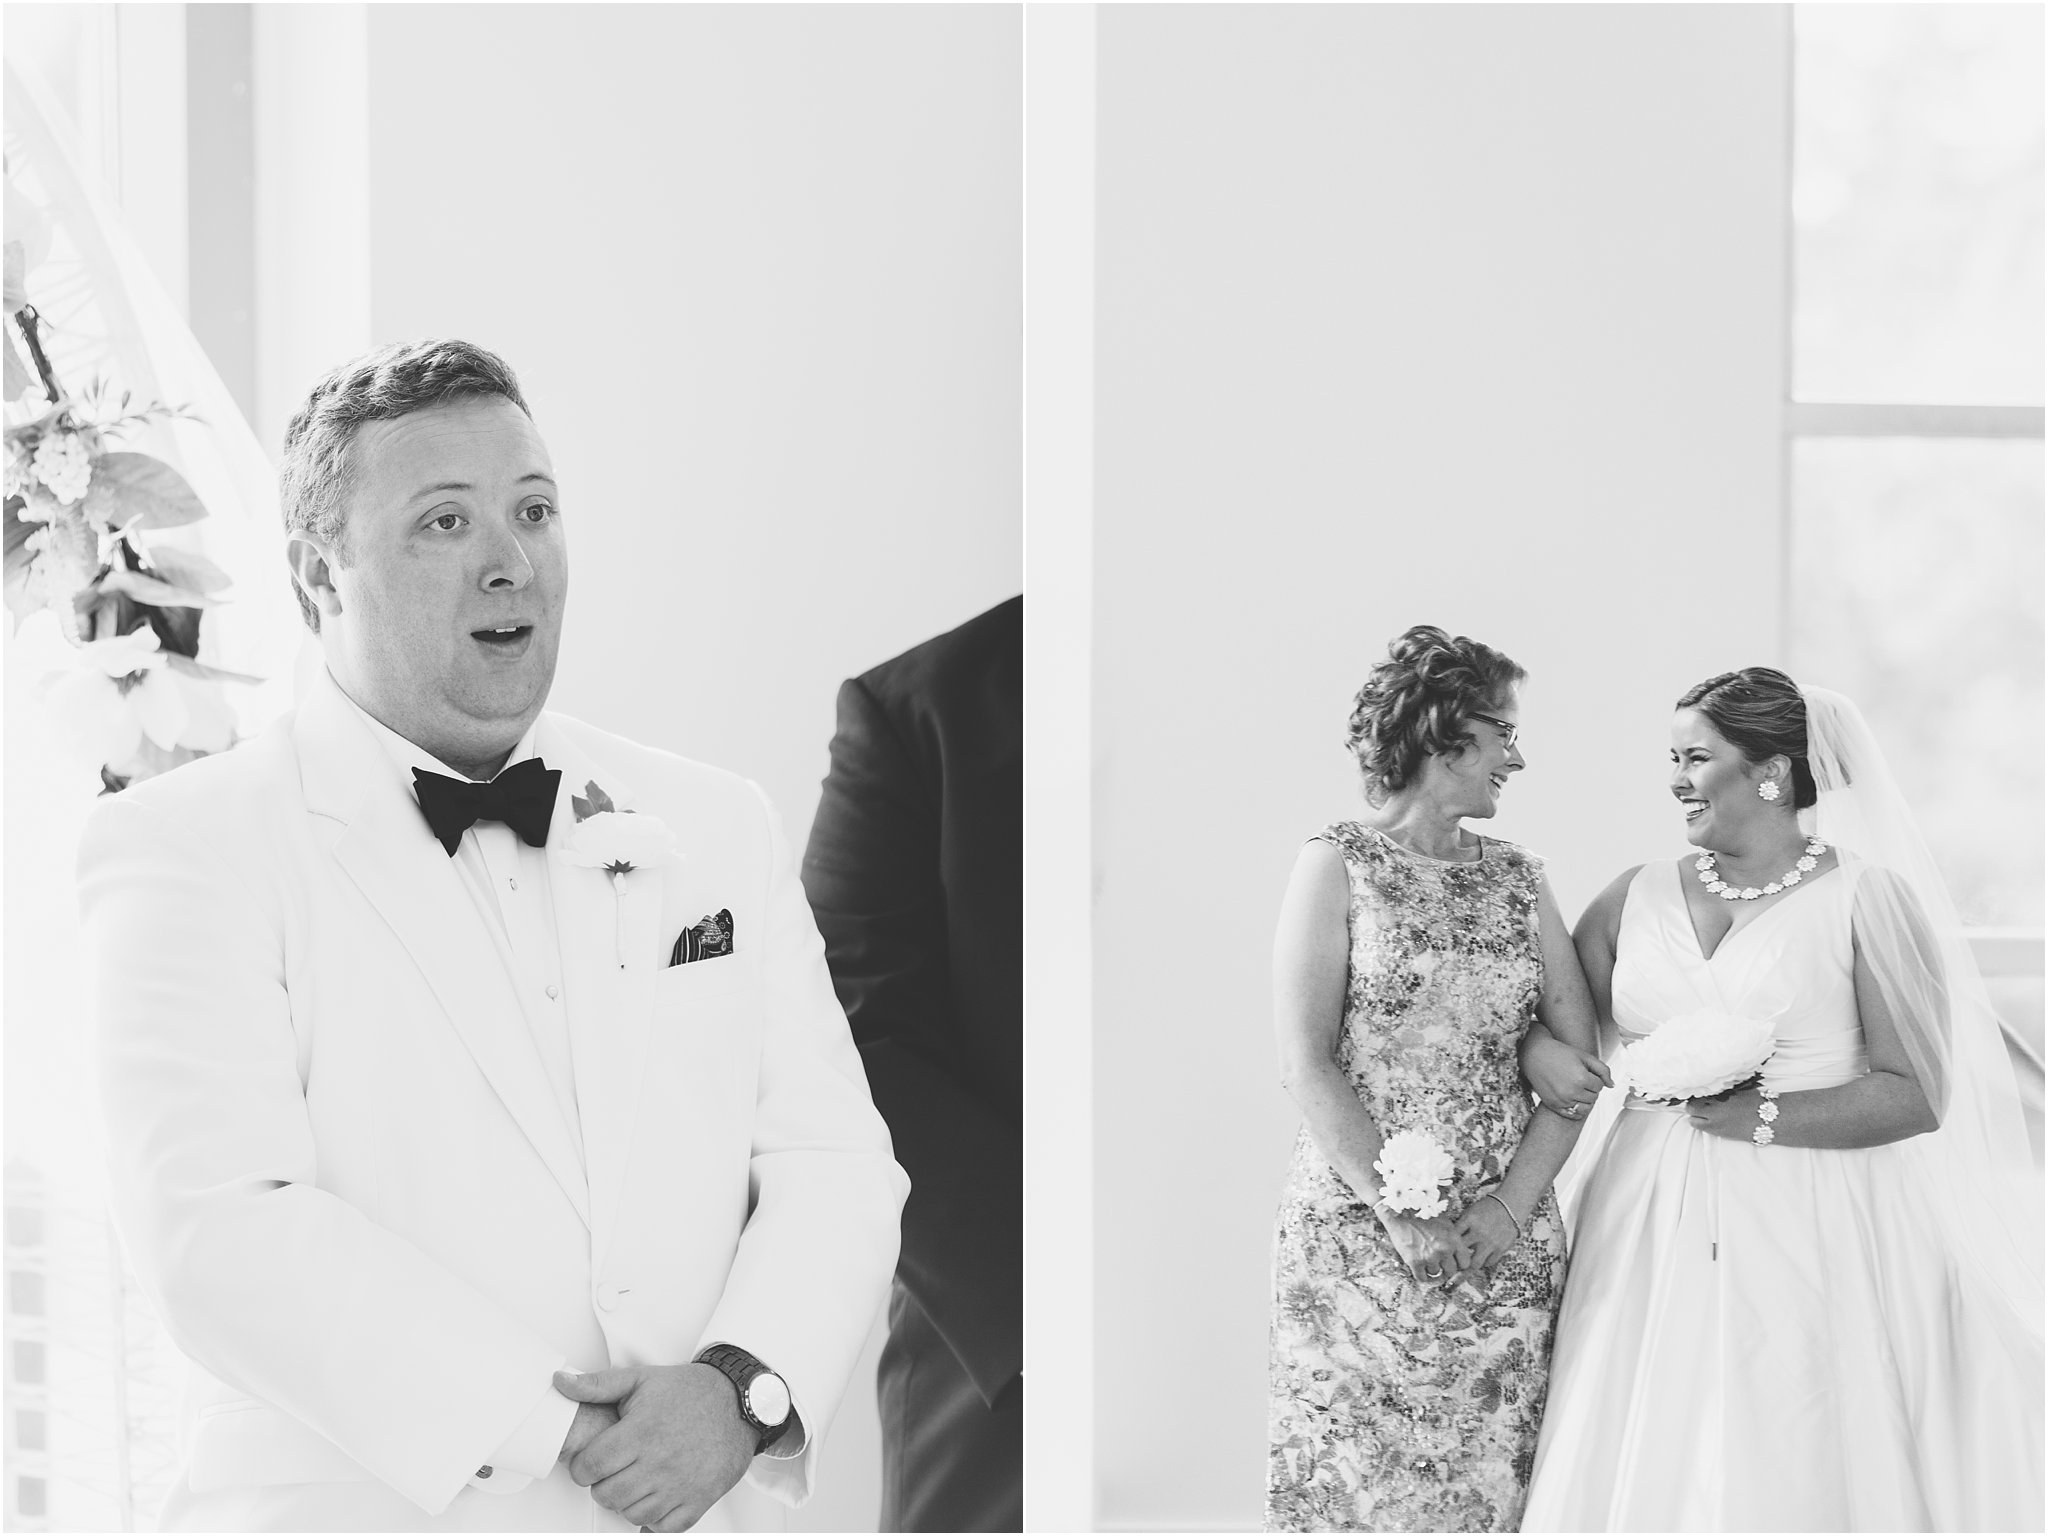 va_jessica_ryan_photography_virginia_wedding_norfolk_harrison_opera_house_norfolk_arts_district_portraits_3781